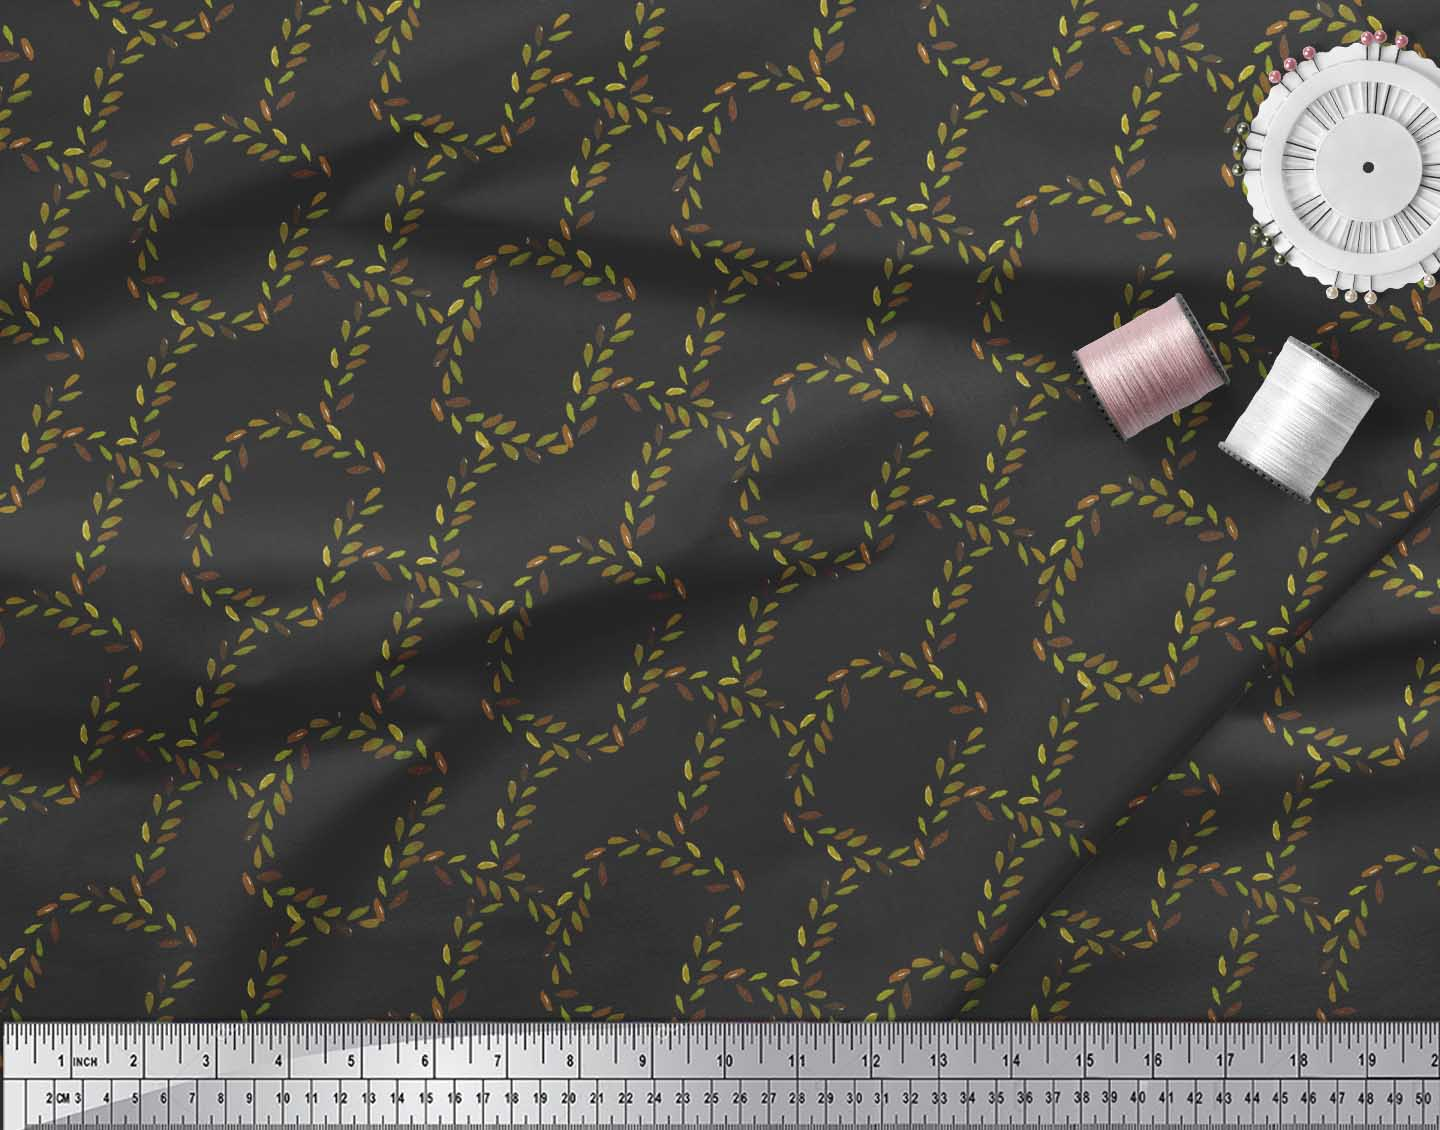 Soimoi-Black-Cotton-Poplin-Fabric-Leaves-amp-Geometric-Print-Sewing-8eY thumbnail 3